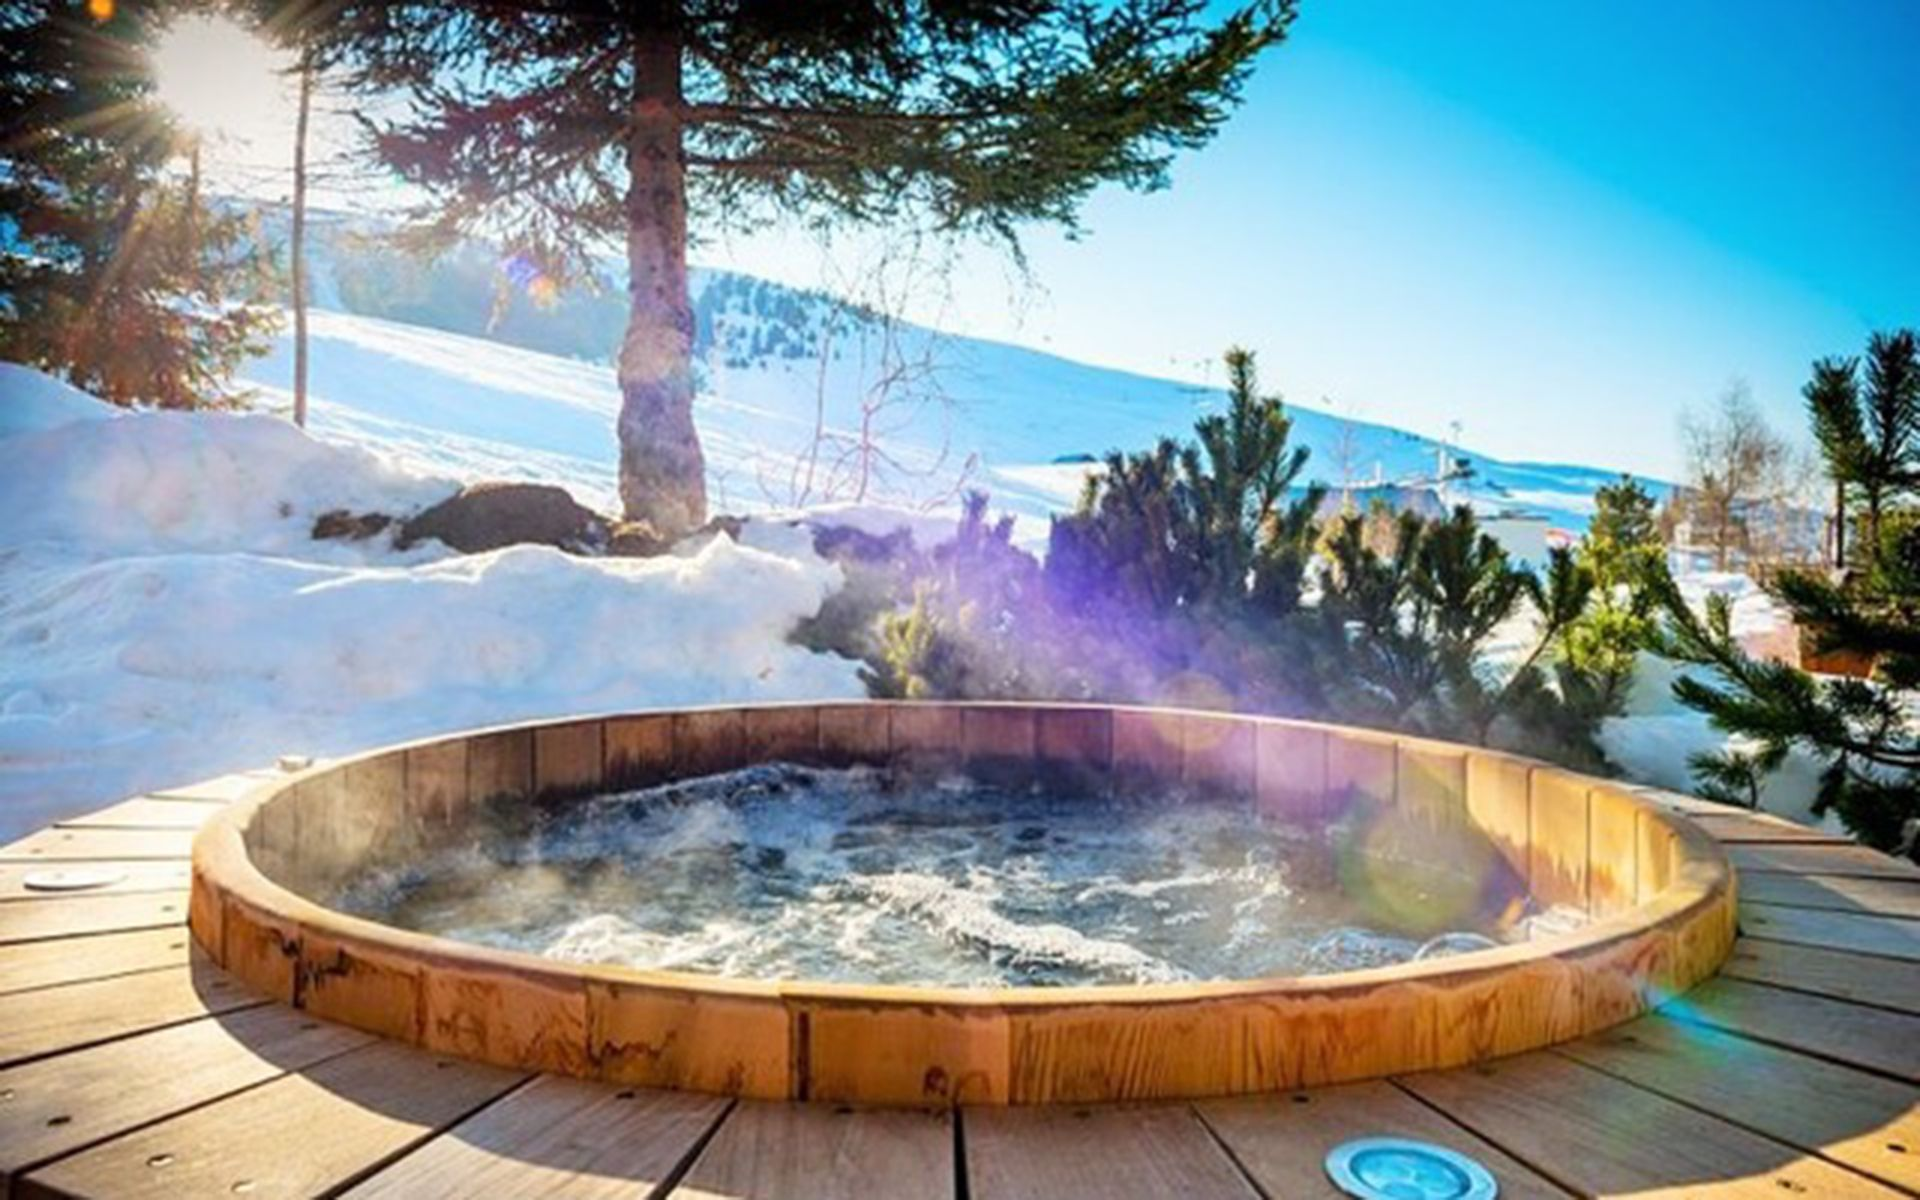 Luxury Ski Chalet Petite Marmotte Lodge Courchevel 1650 France France Firefly Collection Luxury Ski Chalet Luxury Ski Ski Chalet